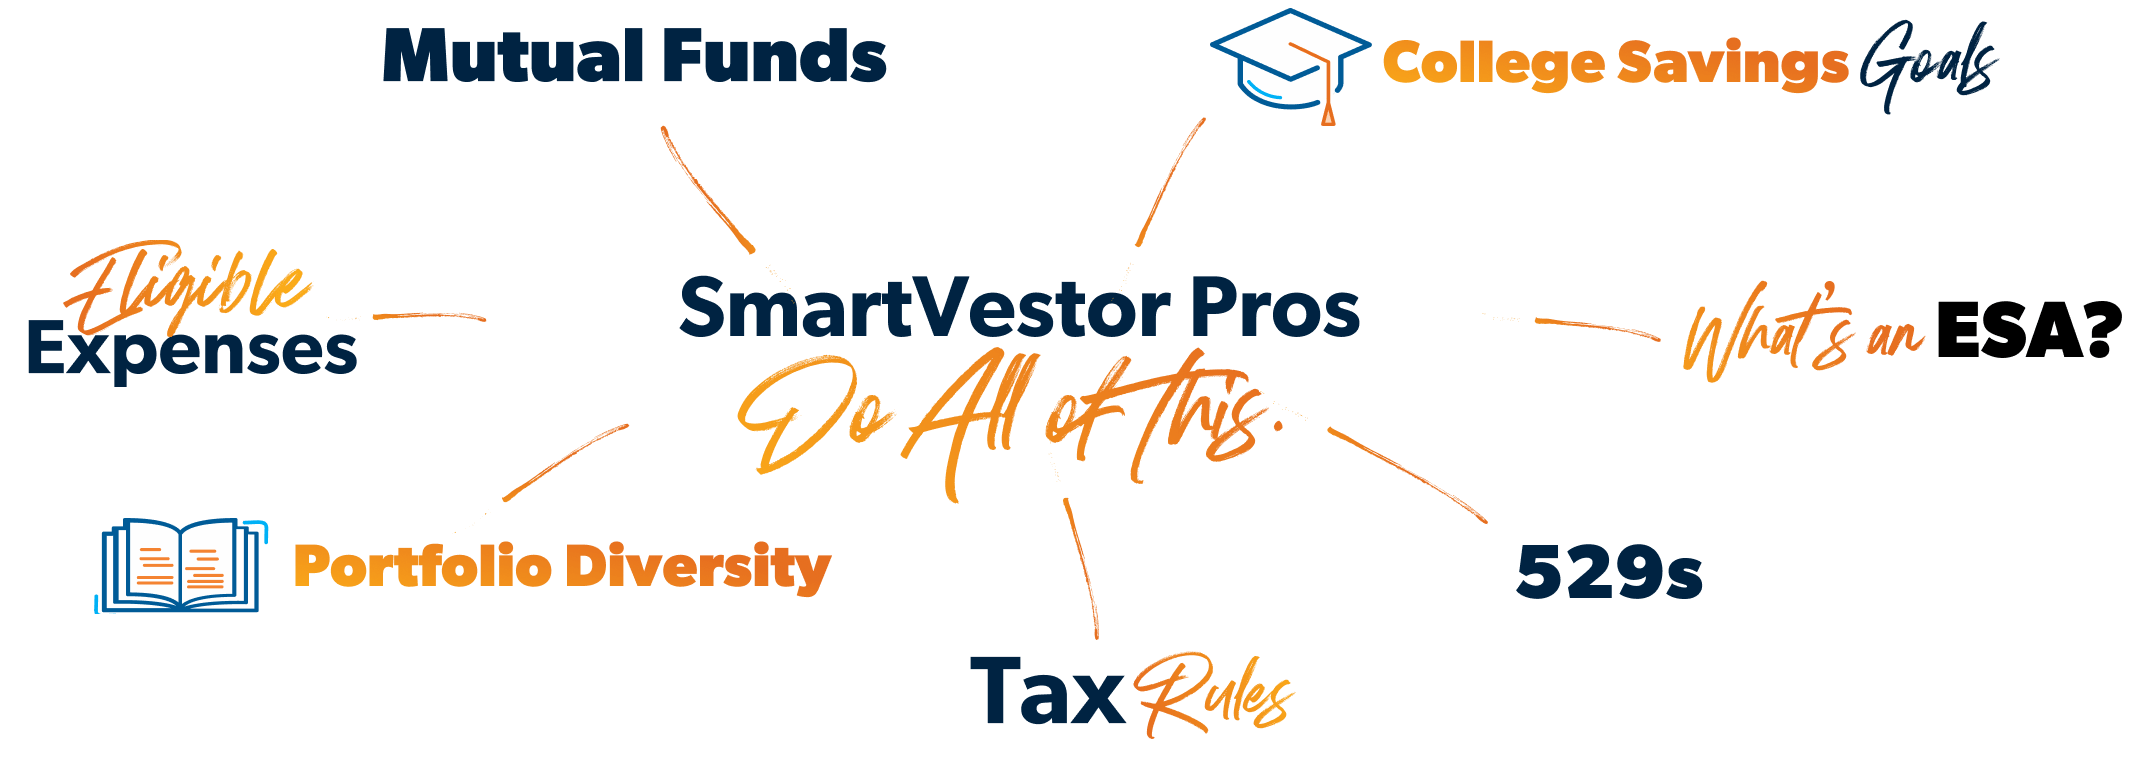 Yeah SmartVestor Pros handle Eligible Expenses, Portfolio Diversity, Tax Rules, 529s, Mutual Funds, and College Savings Goals